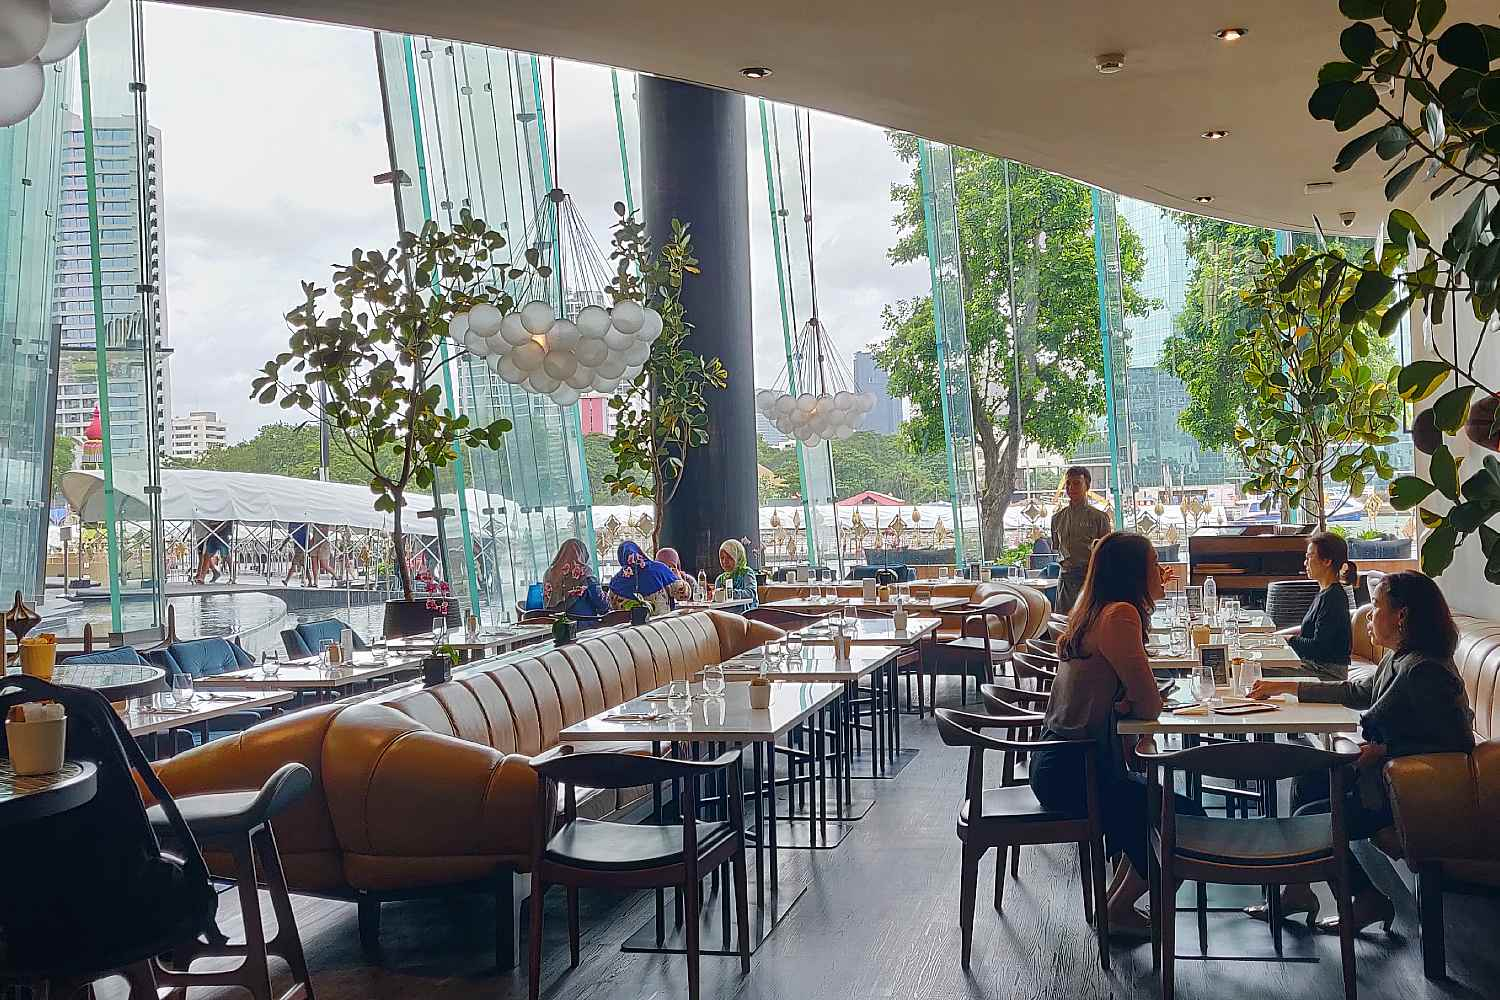 D'ARk, a great restaurant in The Veranda by ICONLUXE, part of ICONSIAM in Bangkok, Thailand.